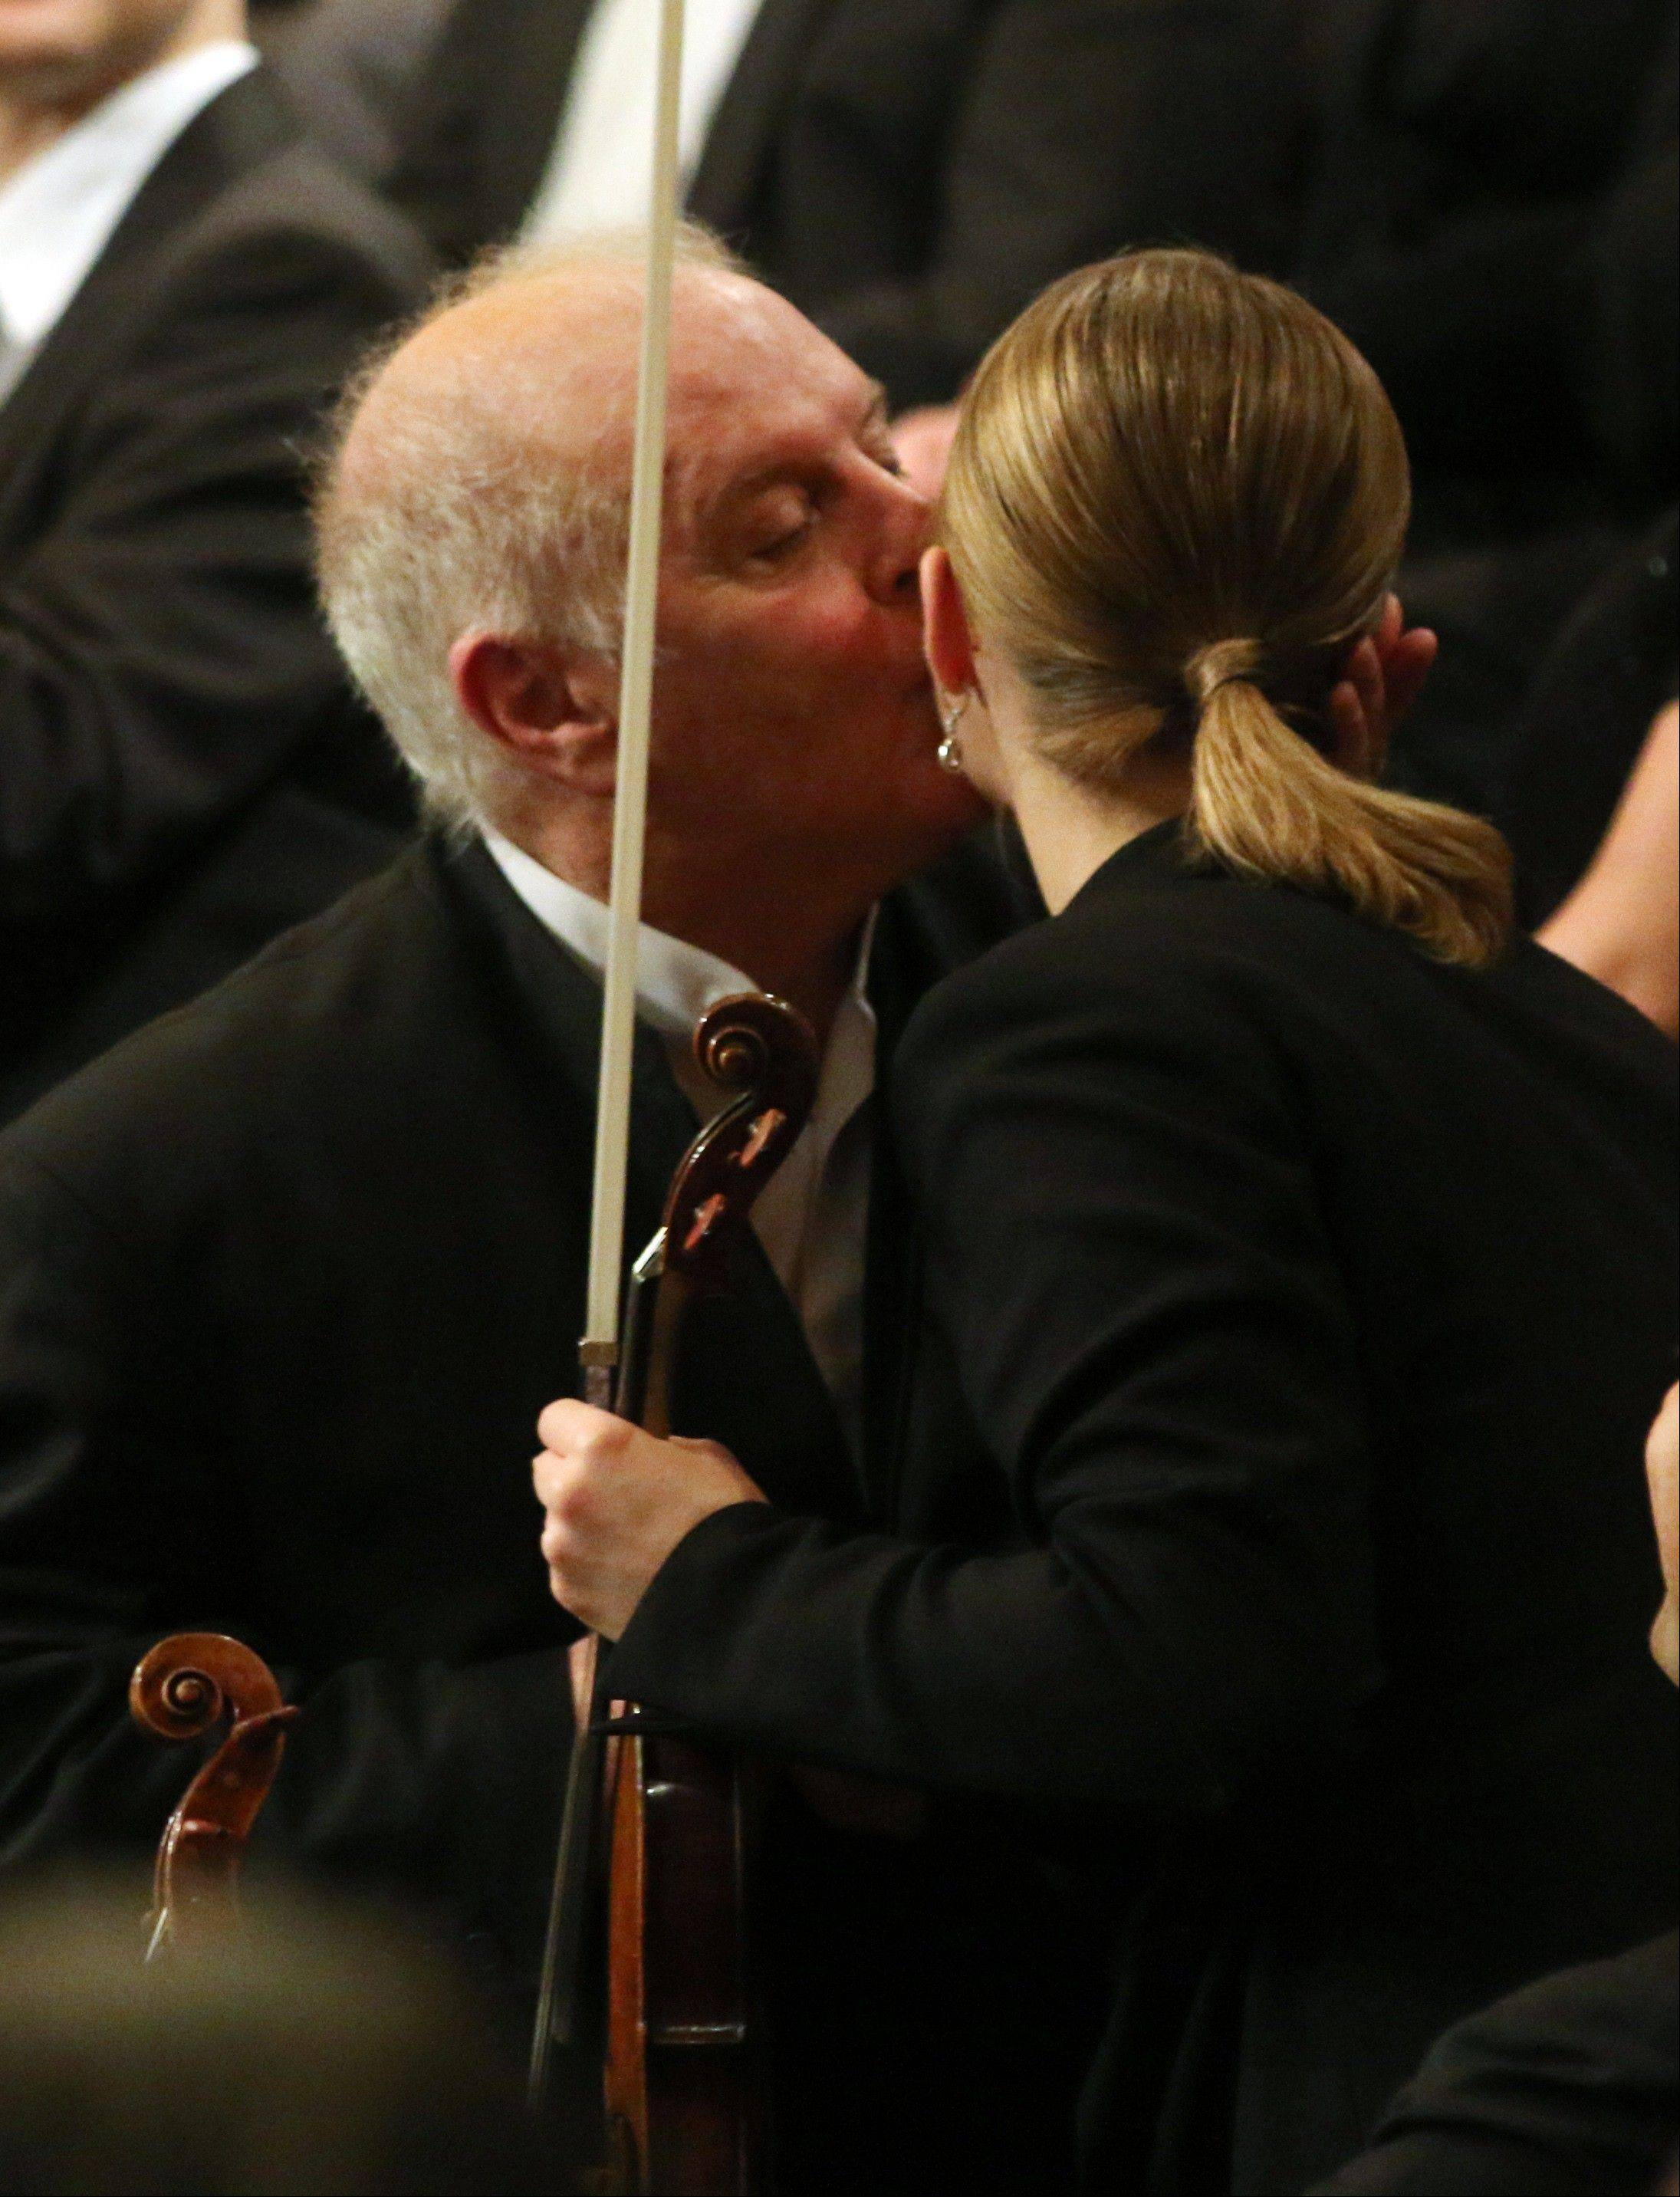 Argentine-born Maestro Daniel Barenboim kisses one of the musicians as he conducts the Vienna Philharmonic Orchestra during the traditional New Year's concert at the Golden Hall of the Musikverein in Vienna, Austria, Wednesday, Jan. 1, 2014.